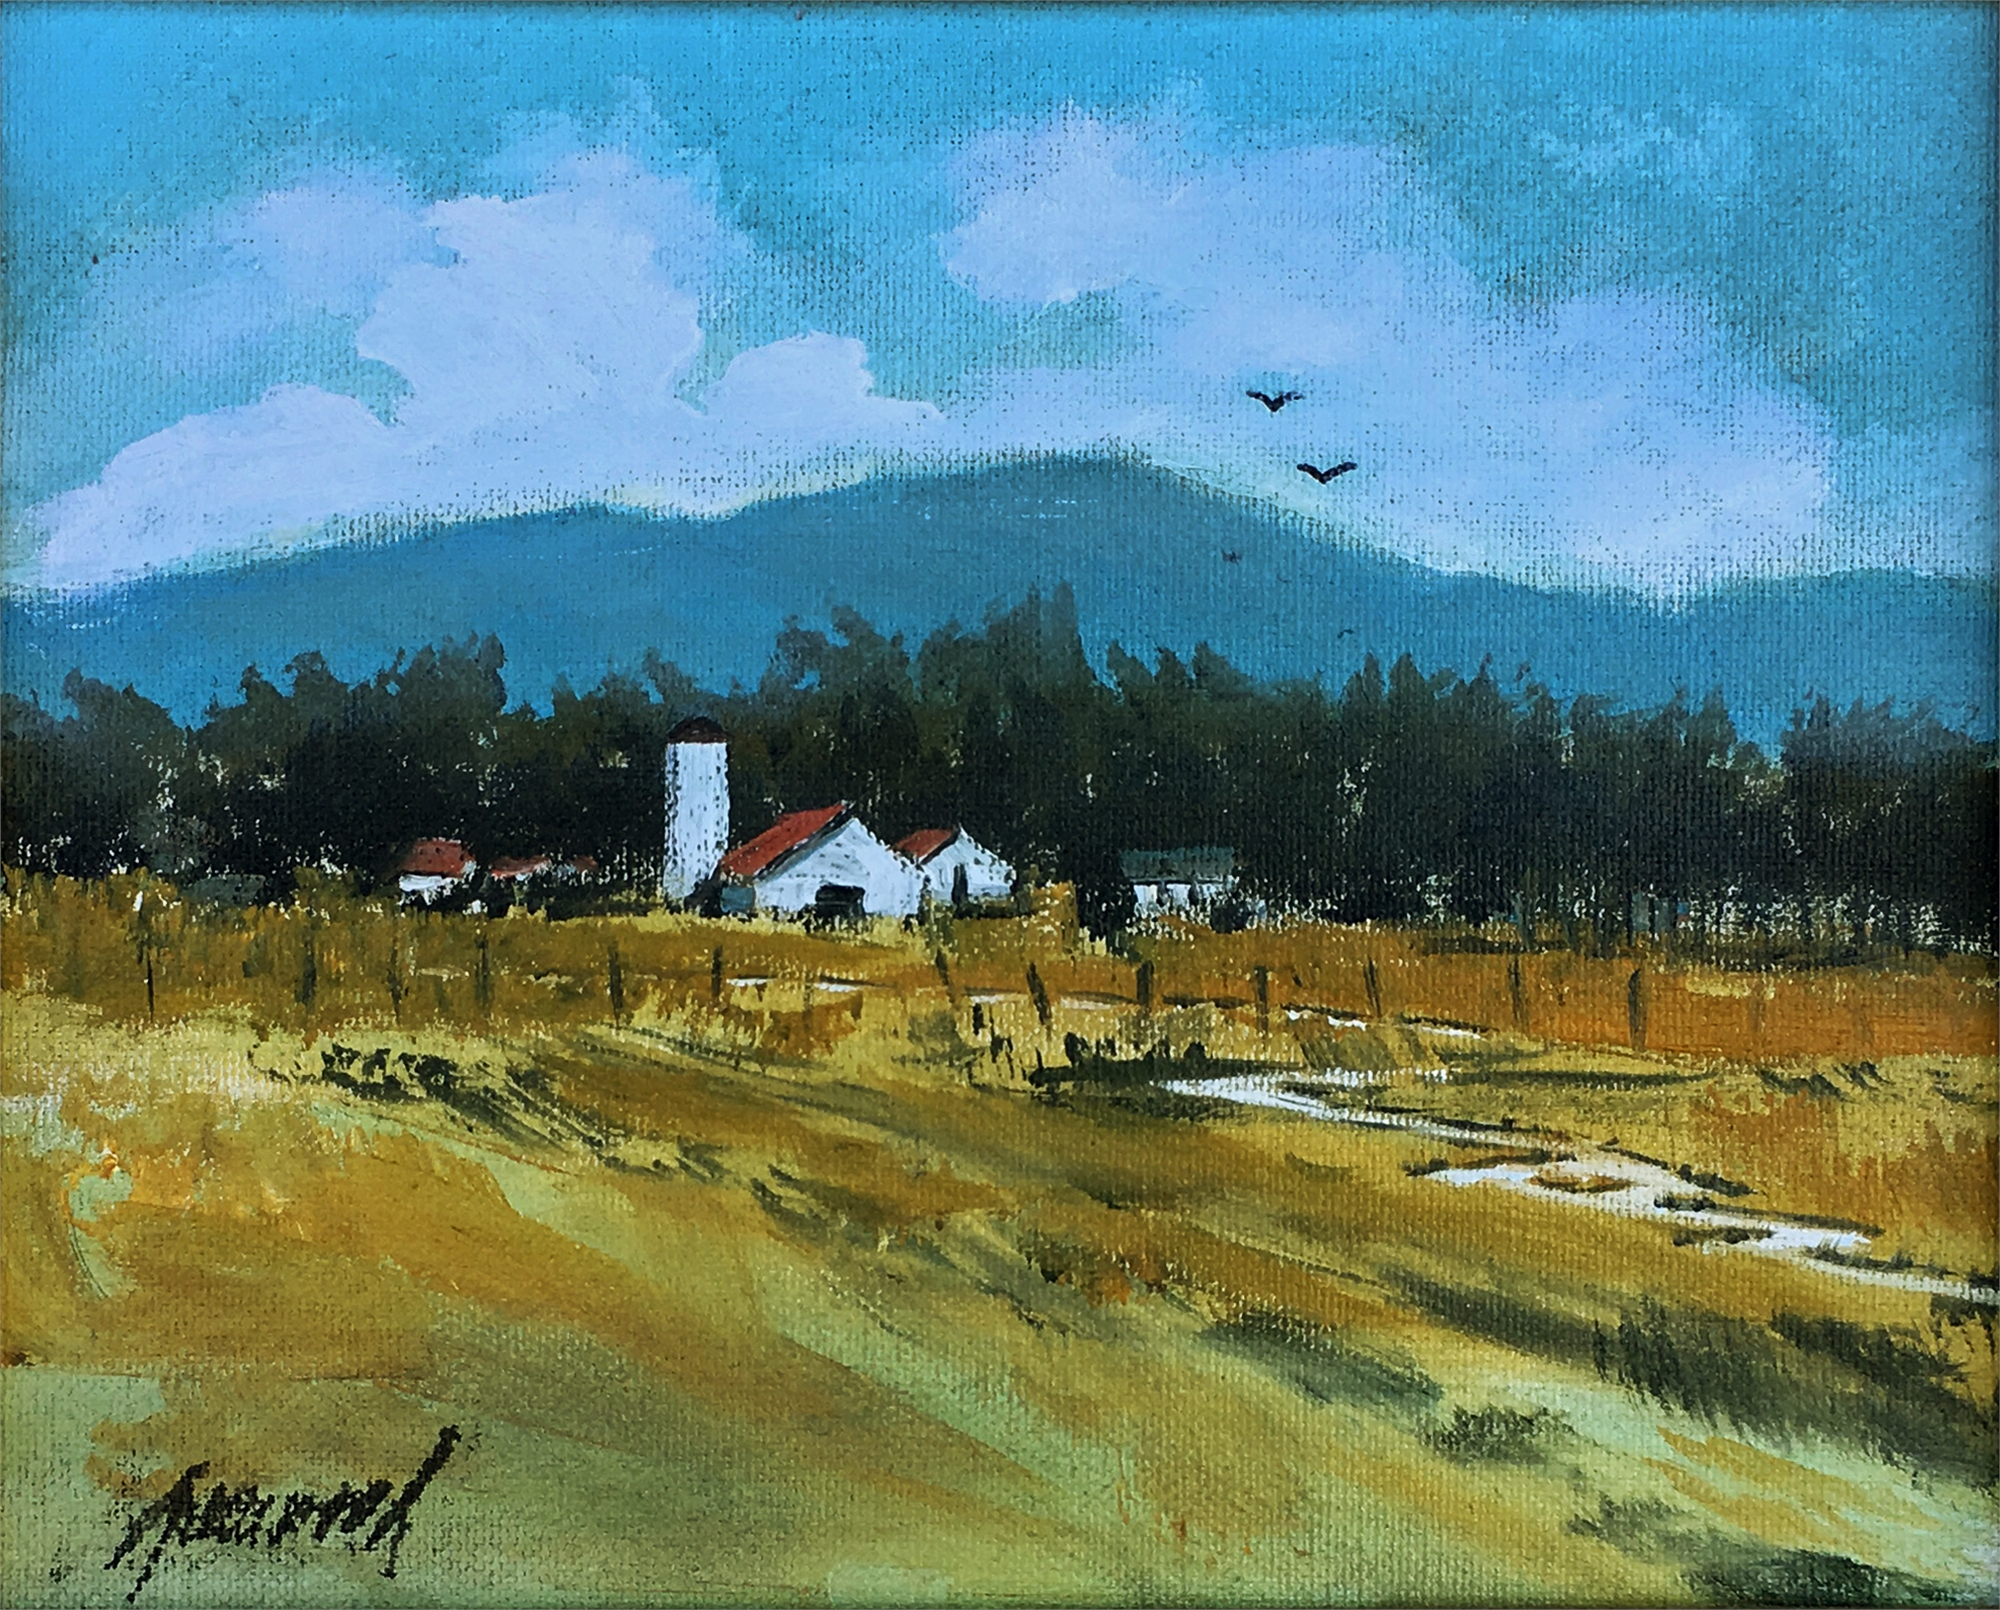 Country Fields by Greenwood